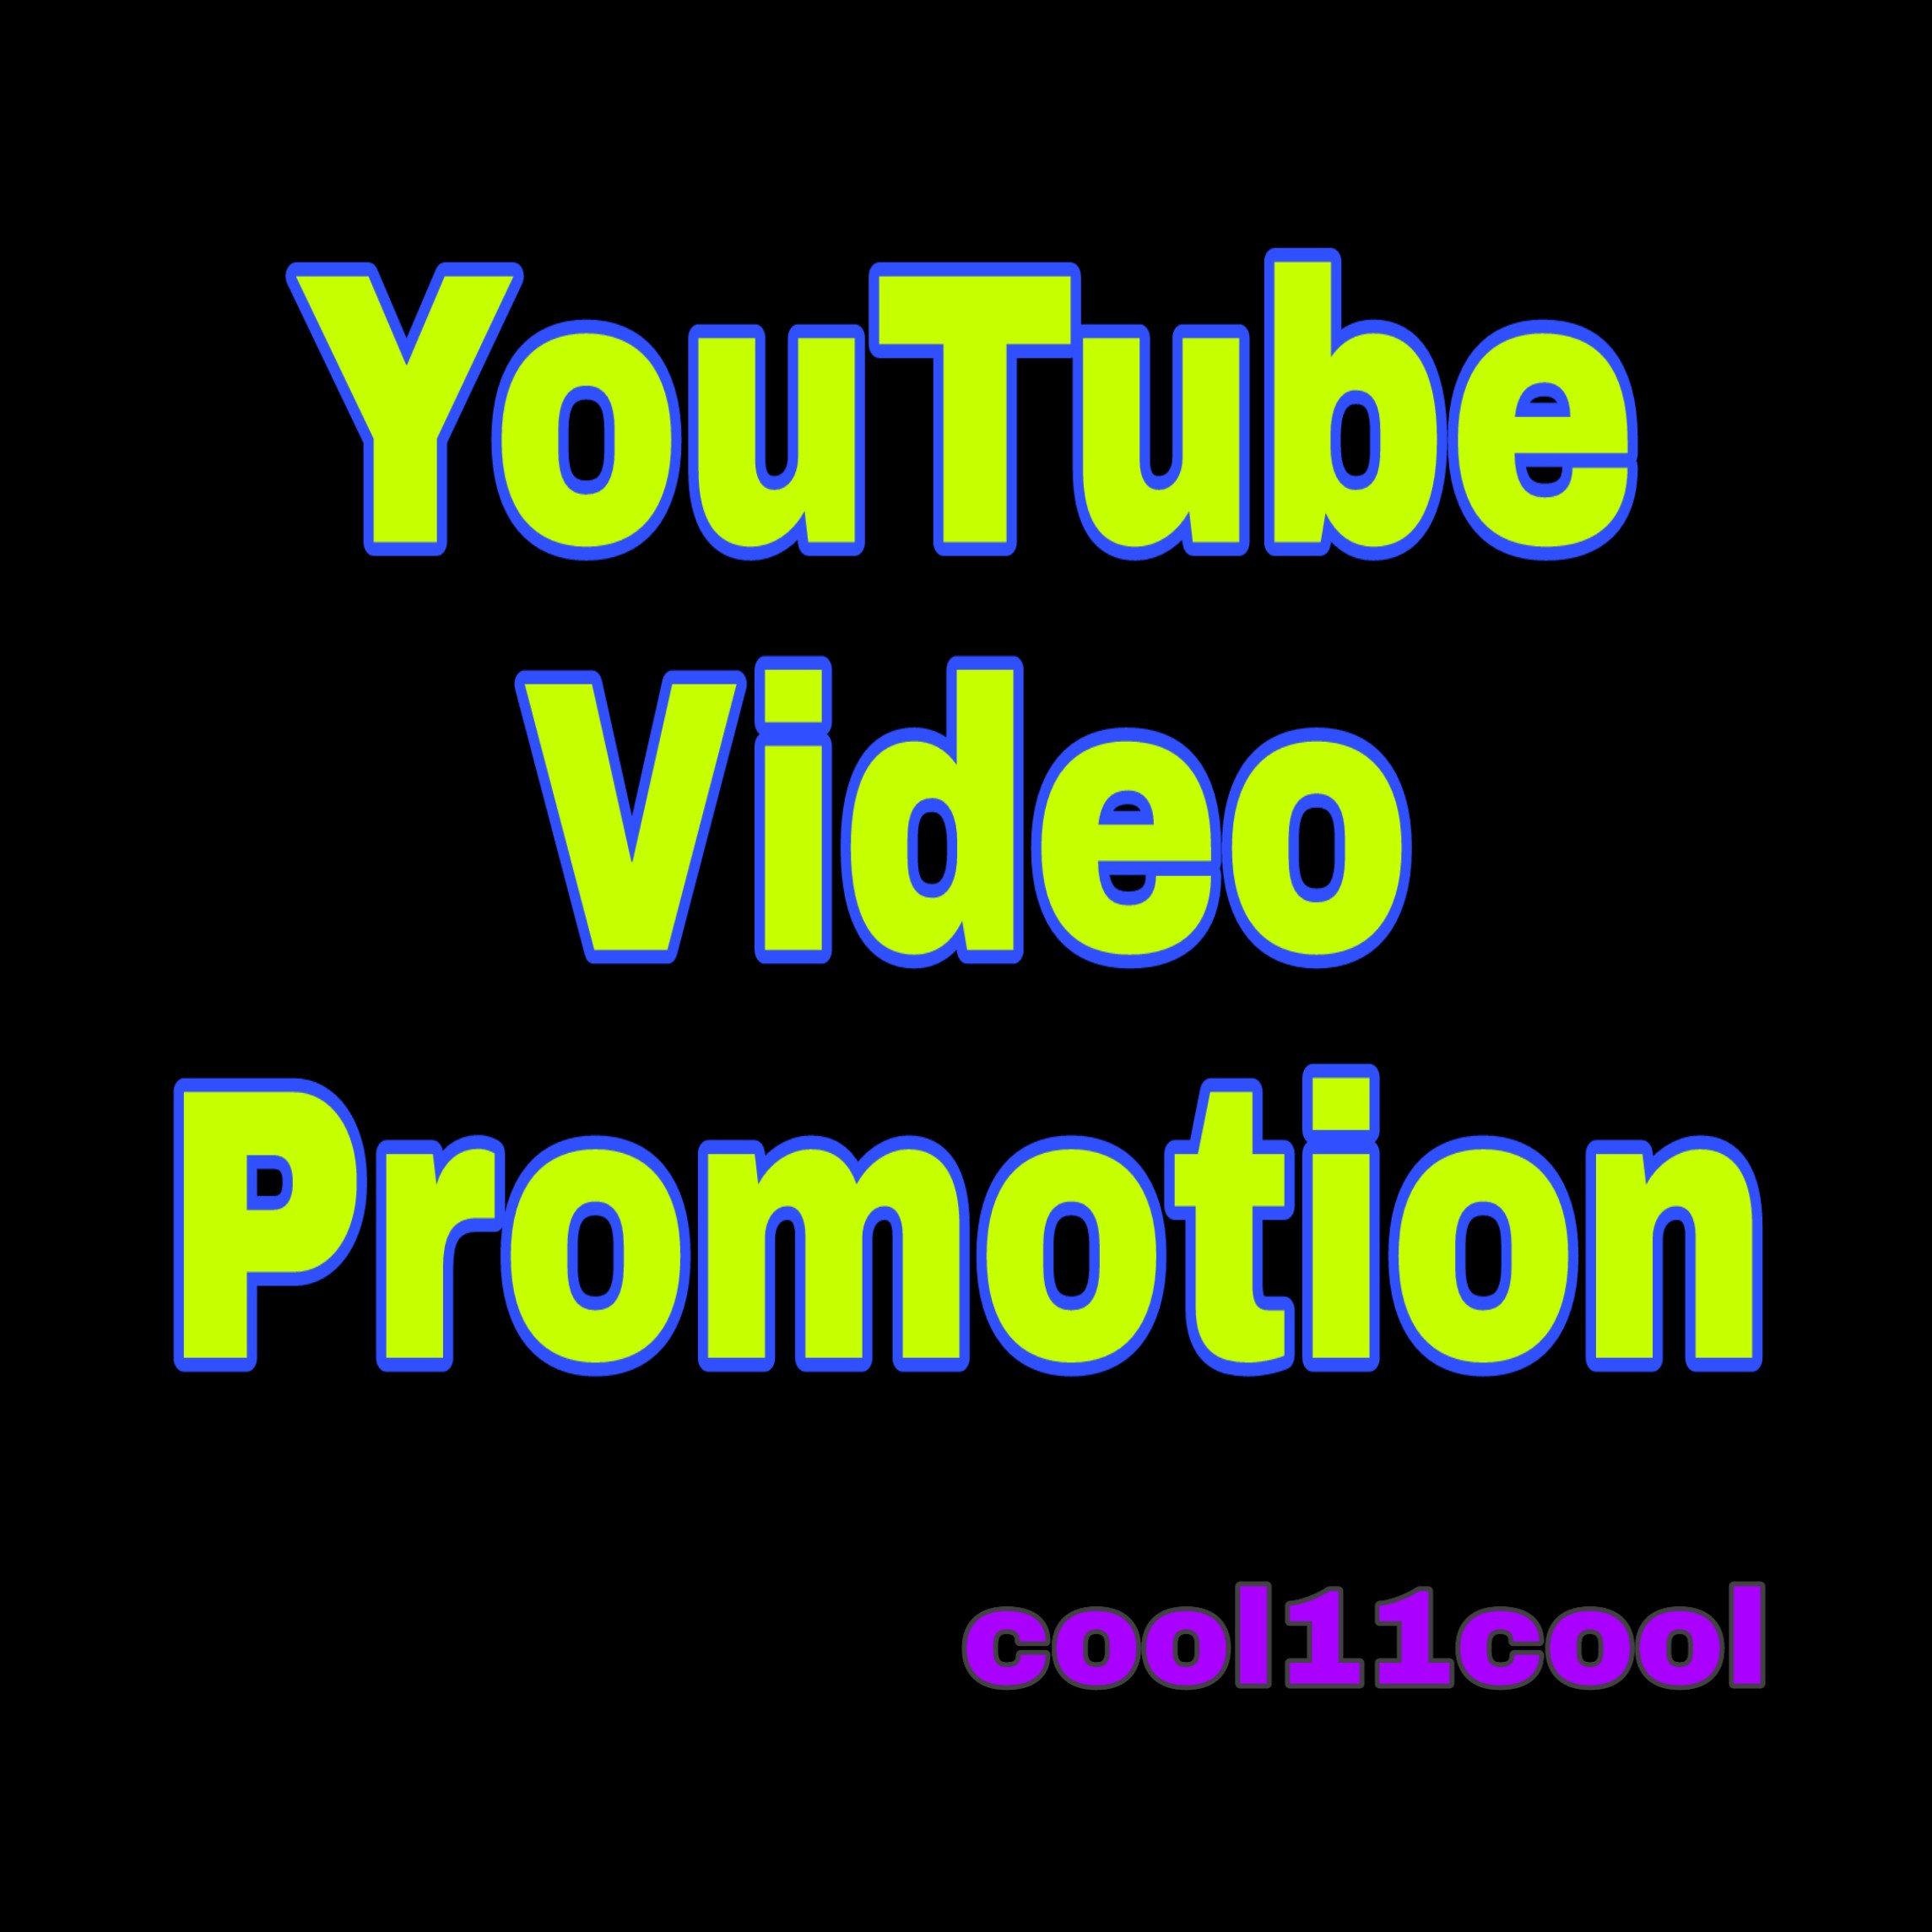 YouTube Video Promotion And Social Media Business